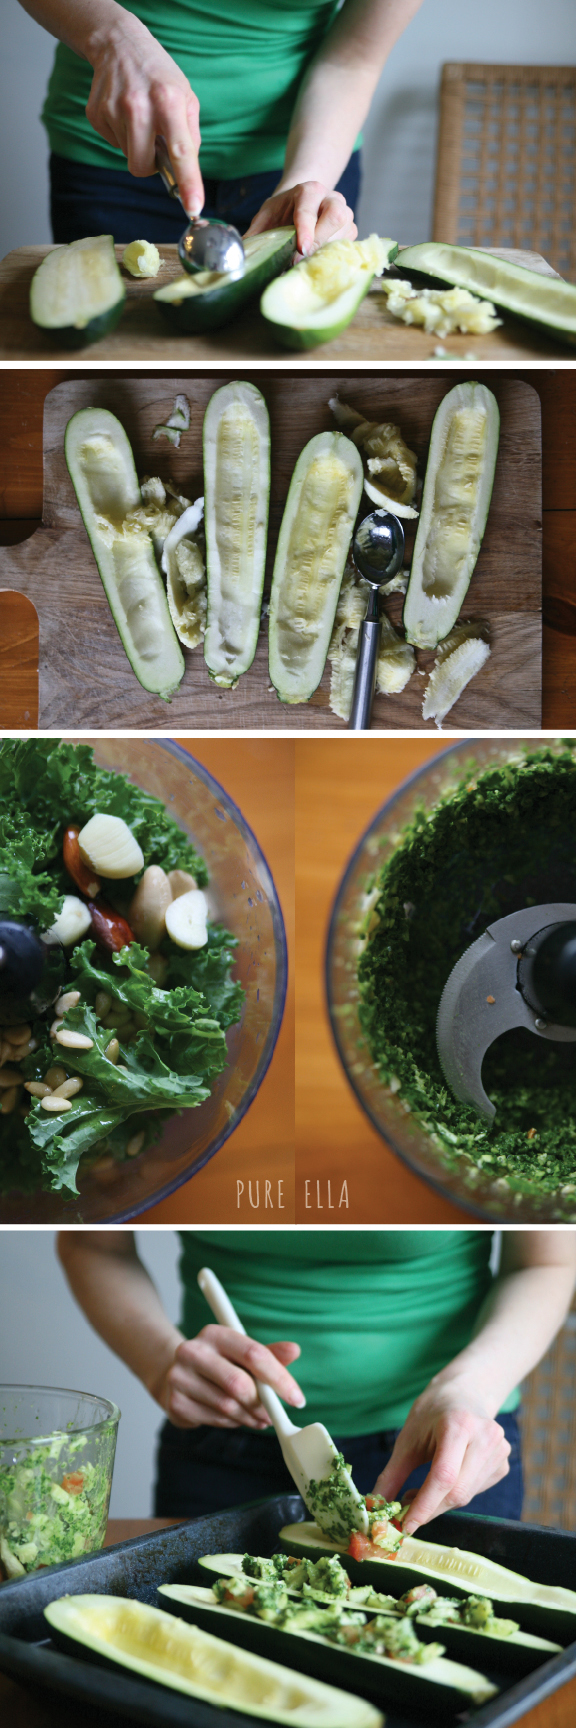 Pesto Stuffed Zucchini Recipe — Dishmaps